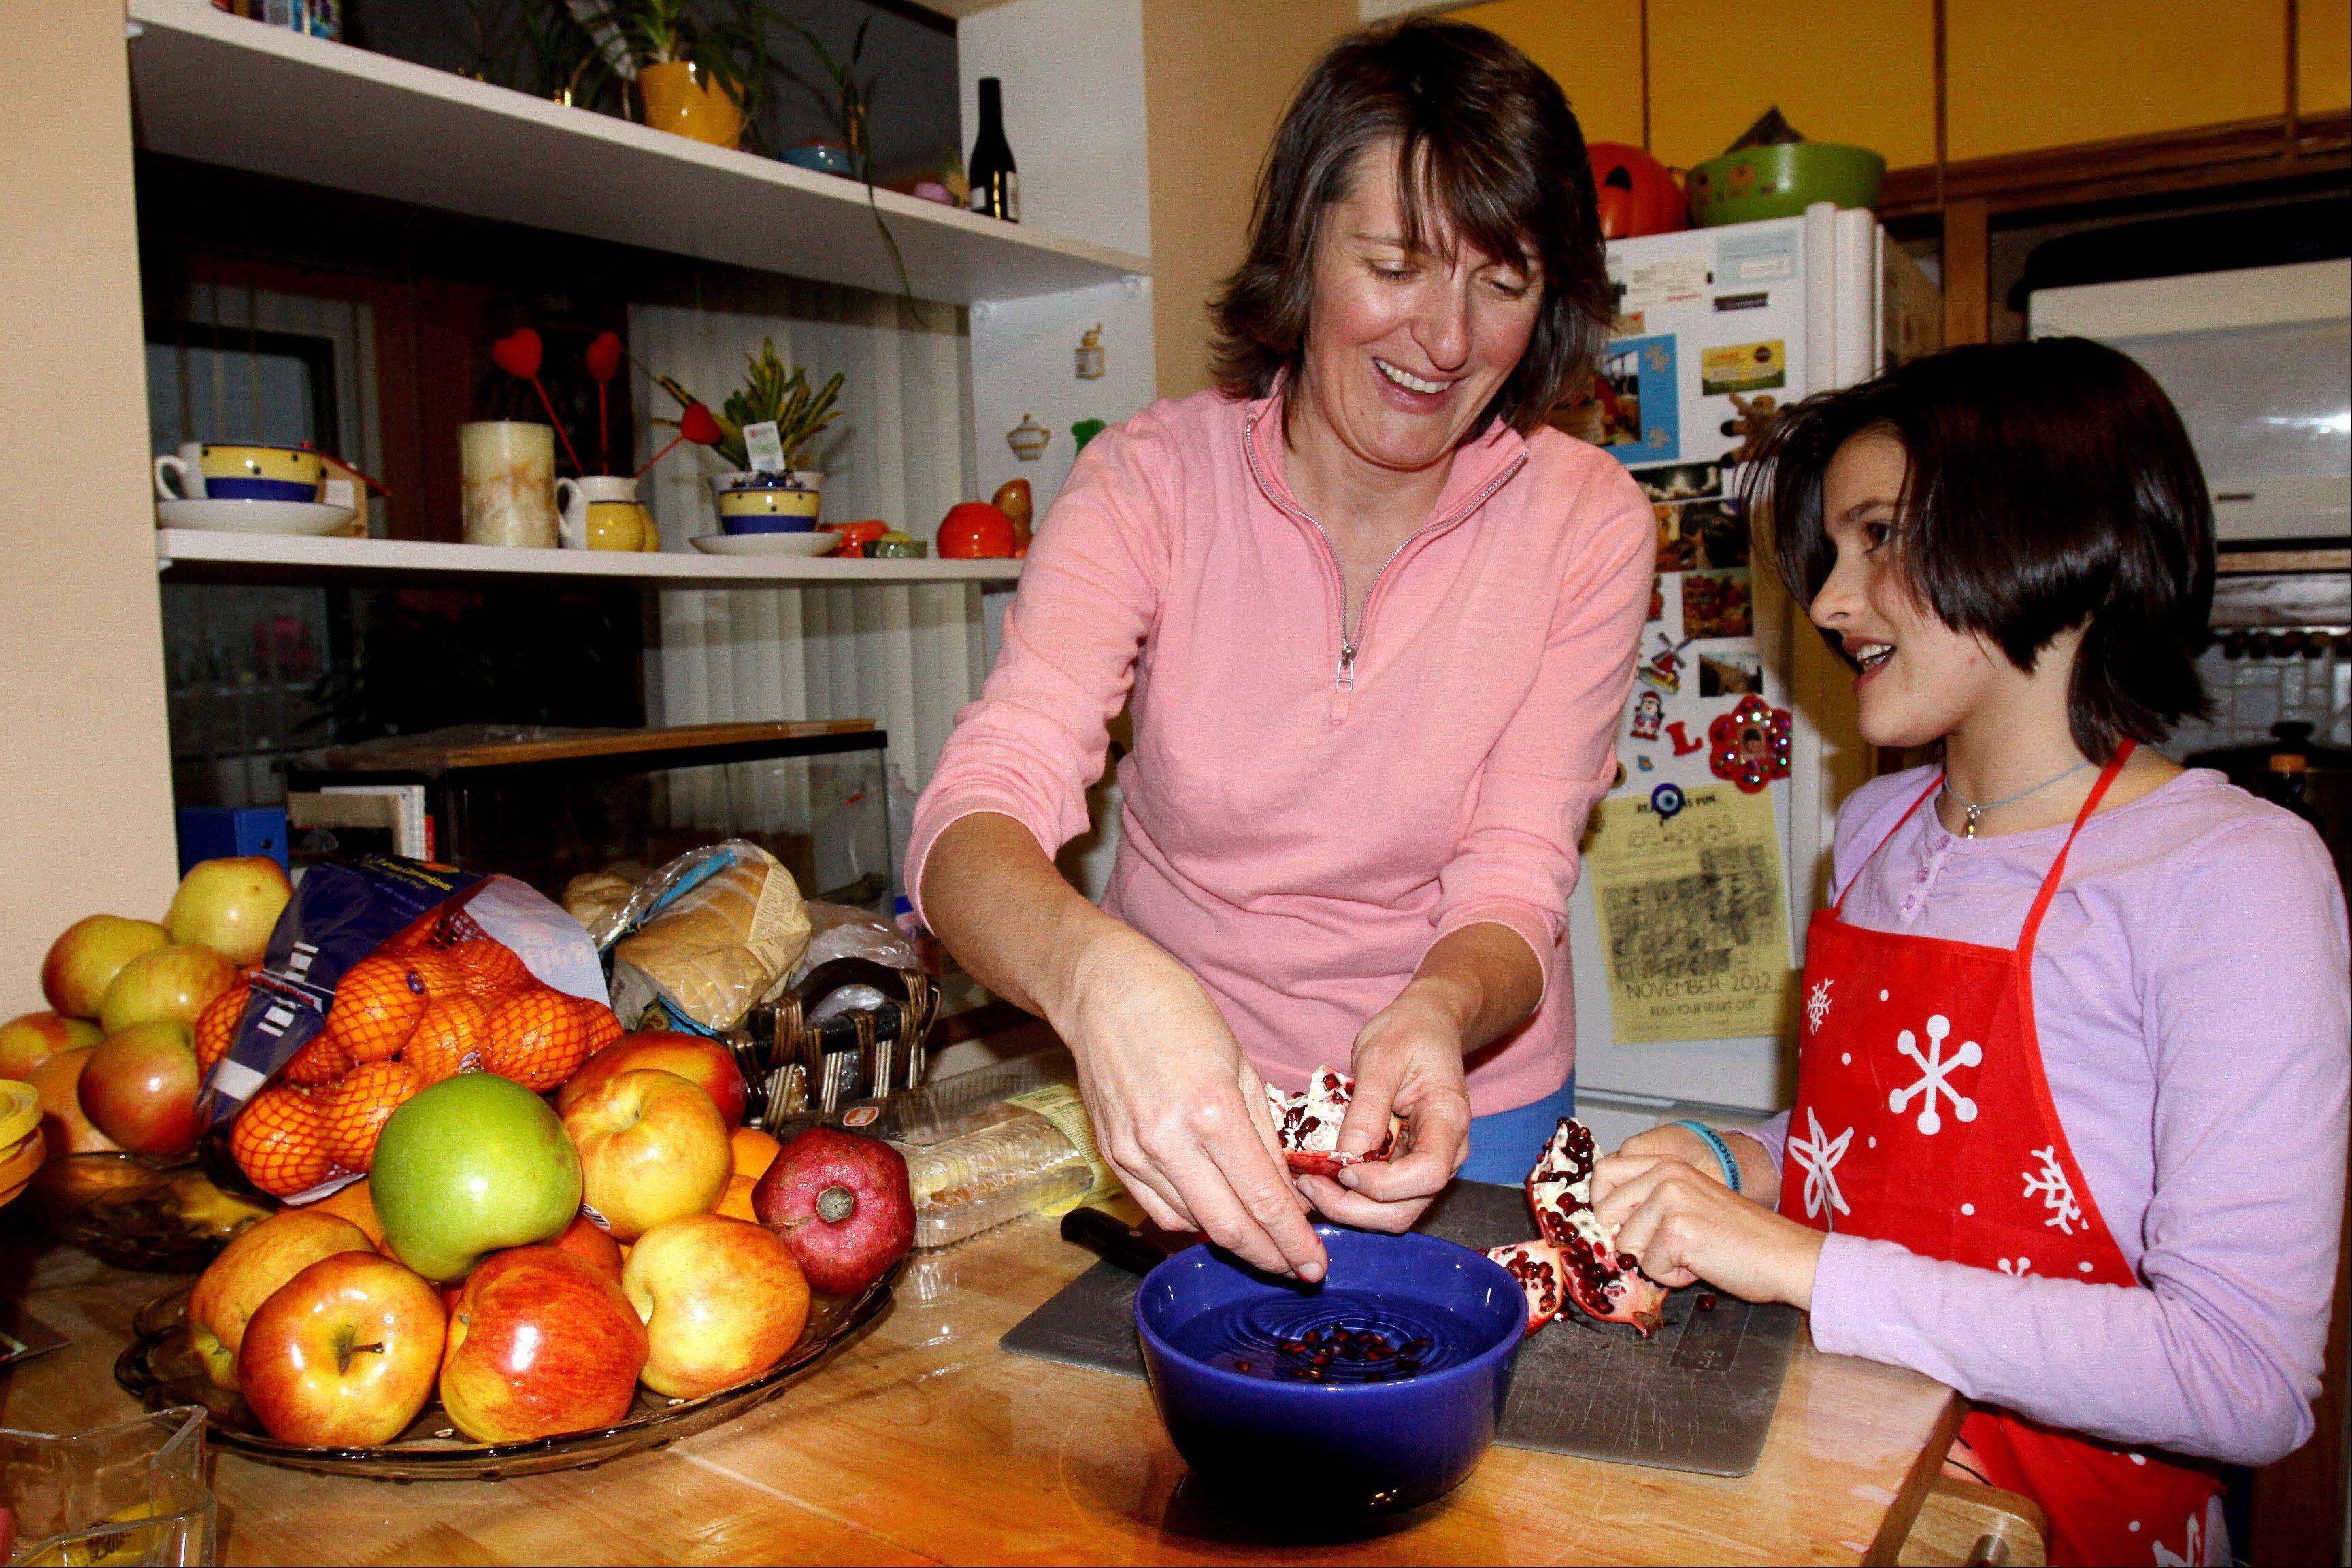 Monika Moro of Lombard helps her 10-year-old daughter, Alison, cut a pomegranate for an afternoon snack.